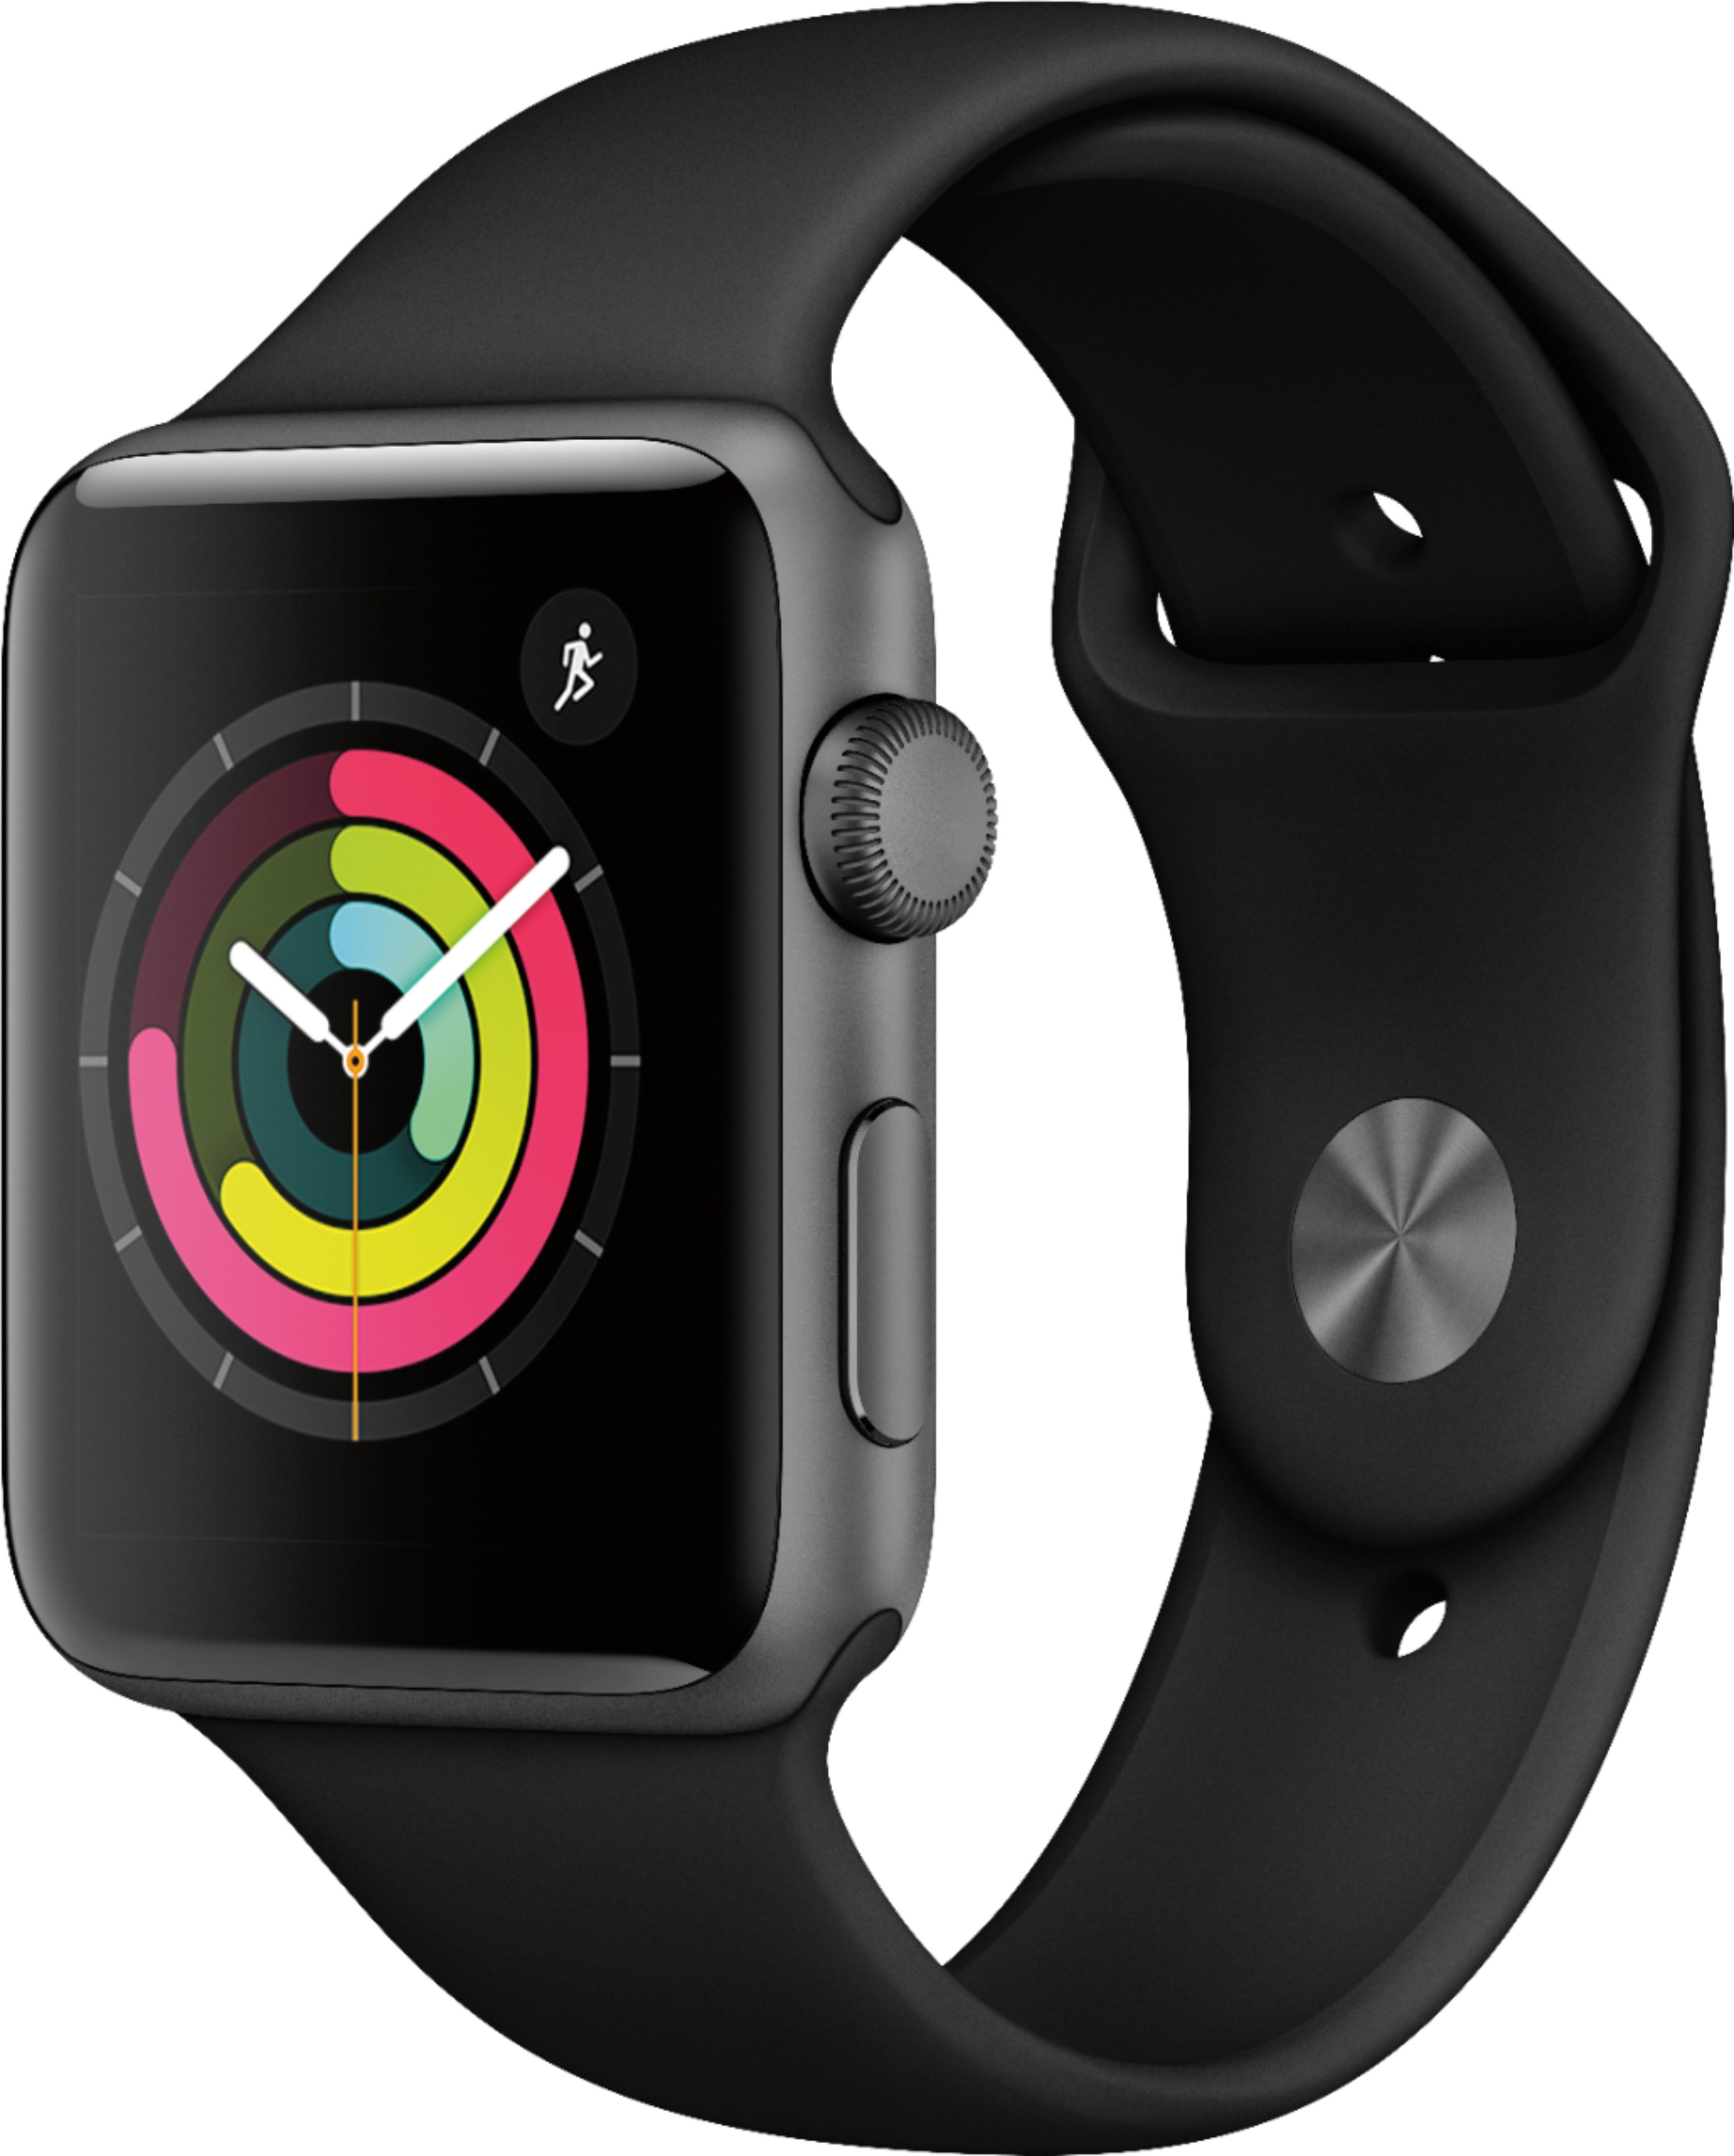 Apple Watch Series 3 (GPS) 42mm Space Gray Aluminum Case with Black Sport Band - Space Gray Aluminum